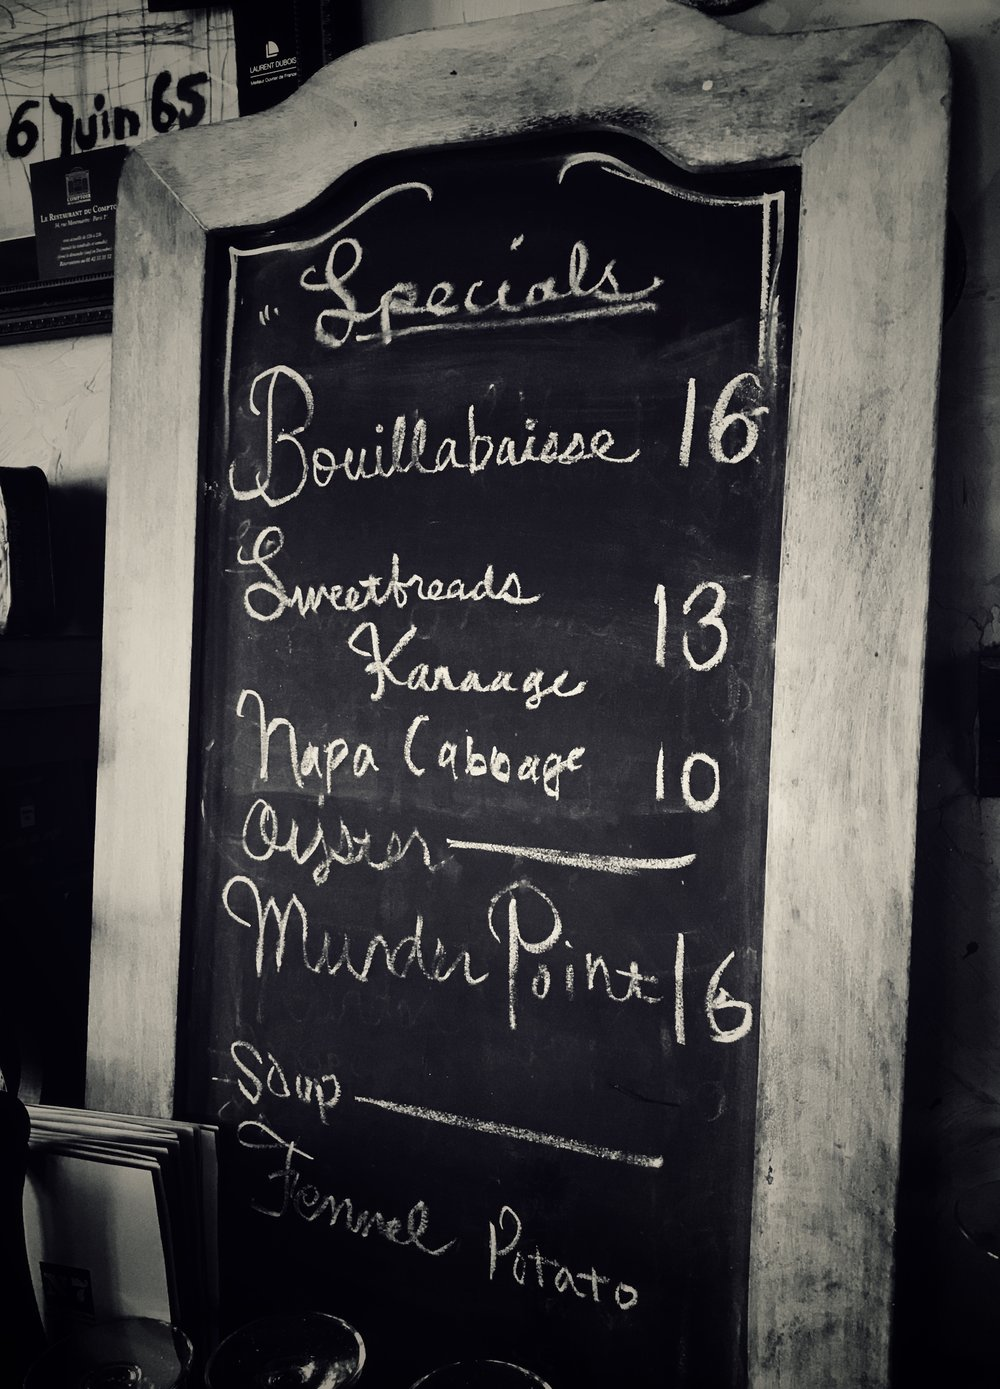 - N7's menu changes as the seasons do, according to what is available from our purveyors and what we grow in our own garden.We also offer nightly specials, which change every few days or so. The chalkboard gives a sample night.Our dishes are generally served family style for the entire table, meant to be shared. We do not course our dishes in the general sense, but let them flow from the kitchen as they are ready.If you want your meal coursed or want your dishes served all at once, each person to their own plate, please alert your server.